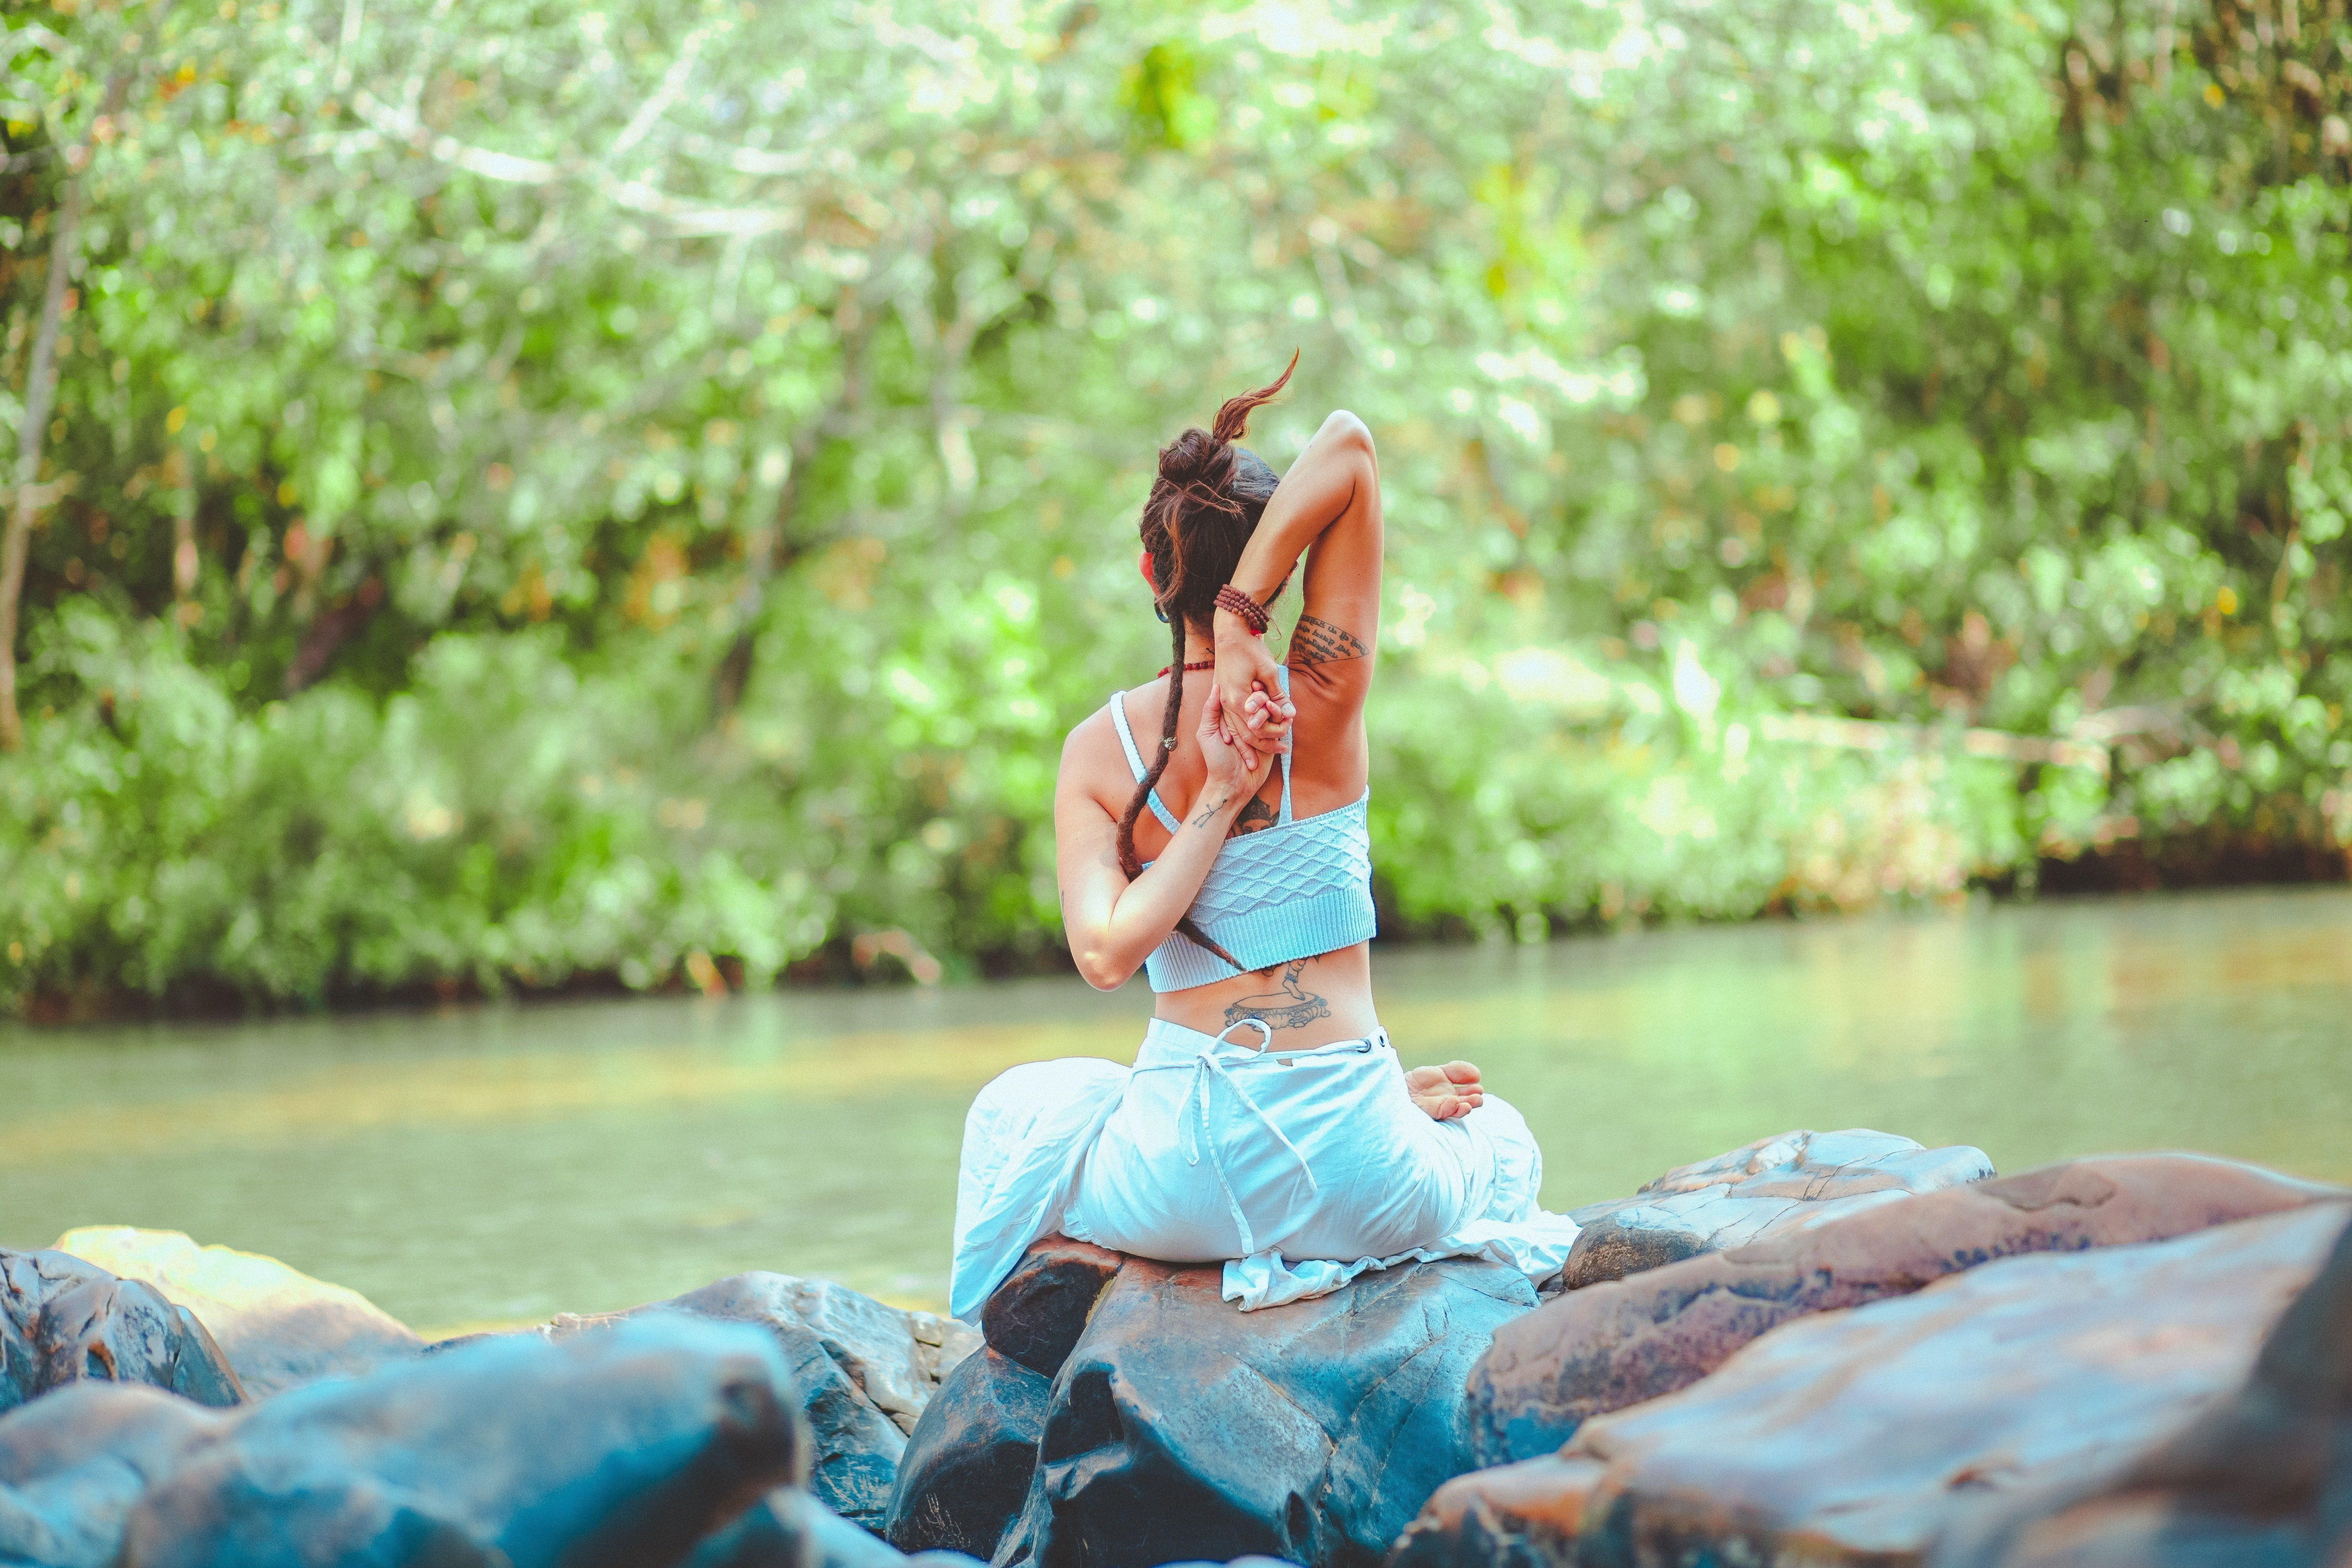 Top 12 Countries for a Transcendental Yoga Retreat